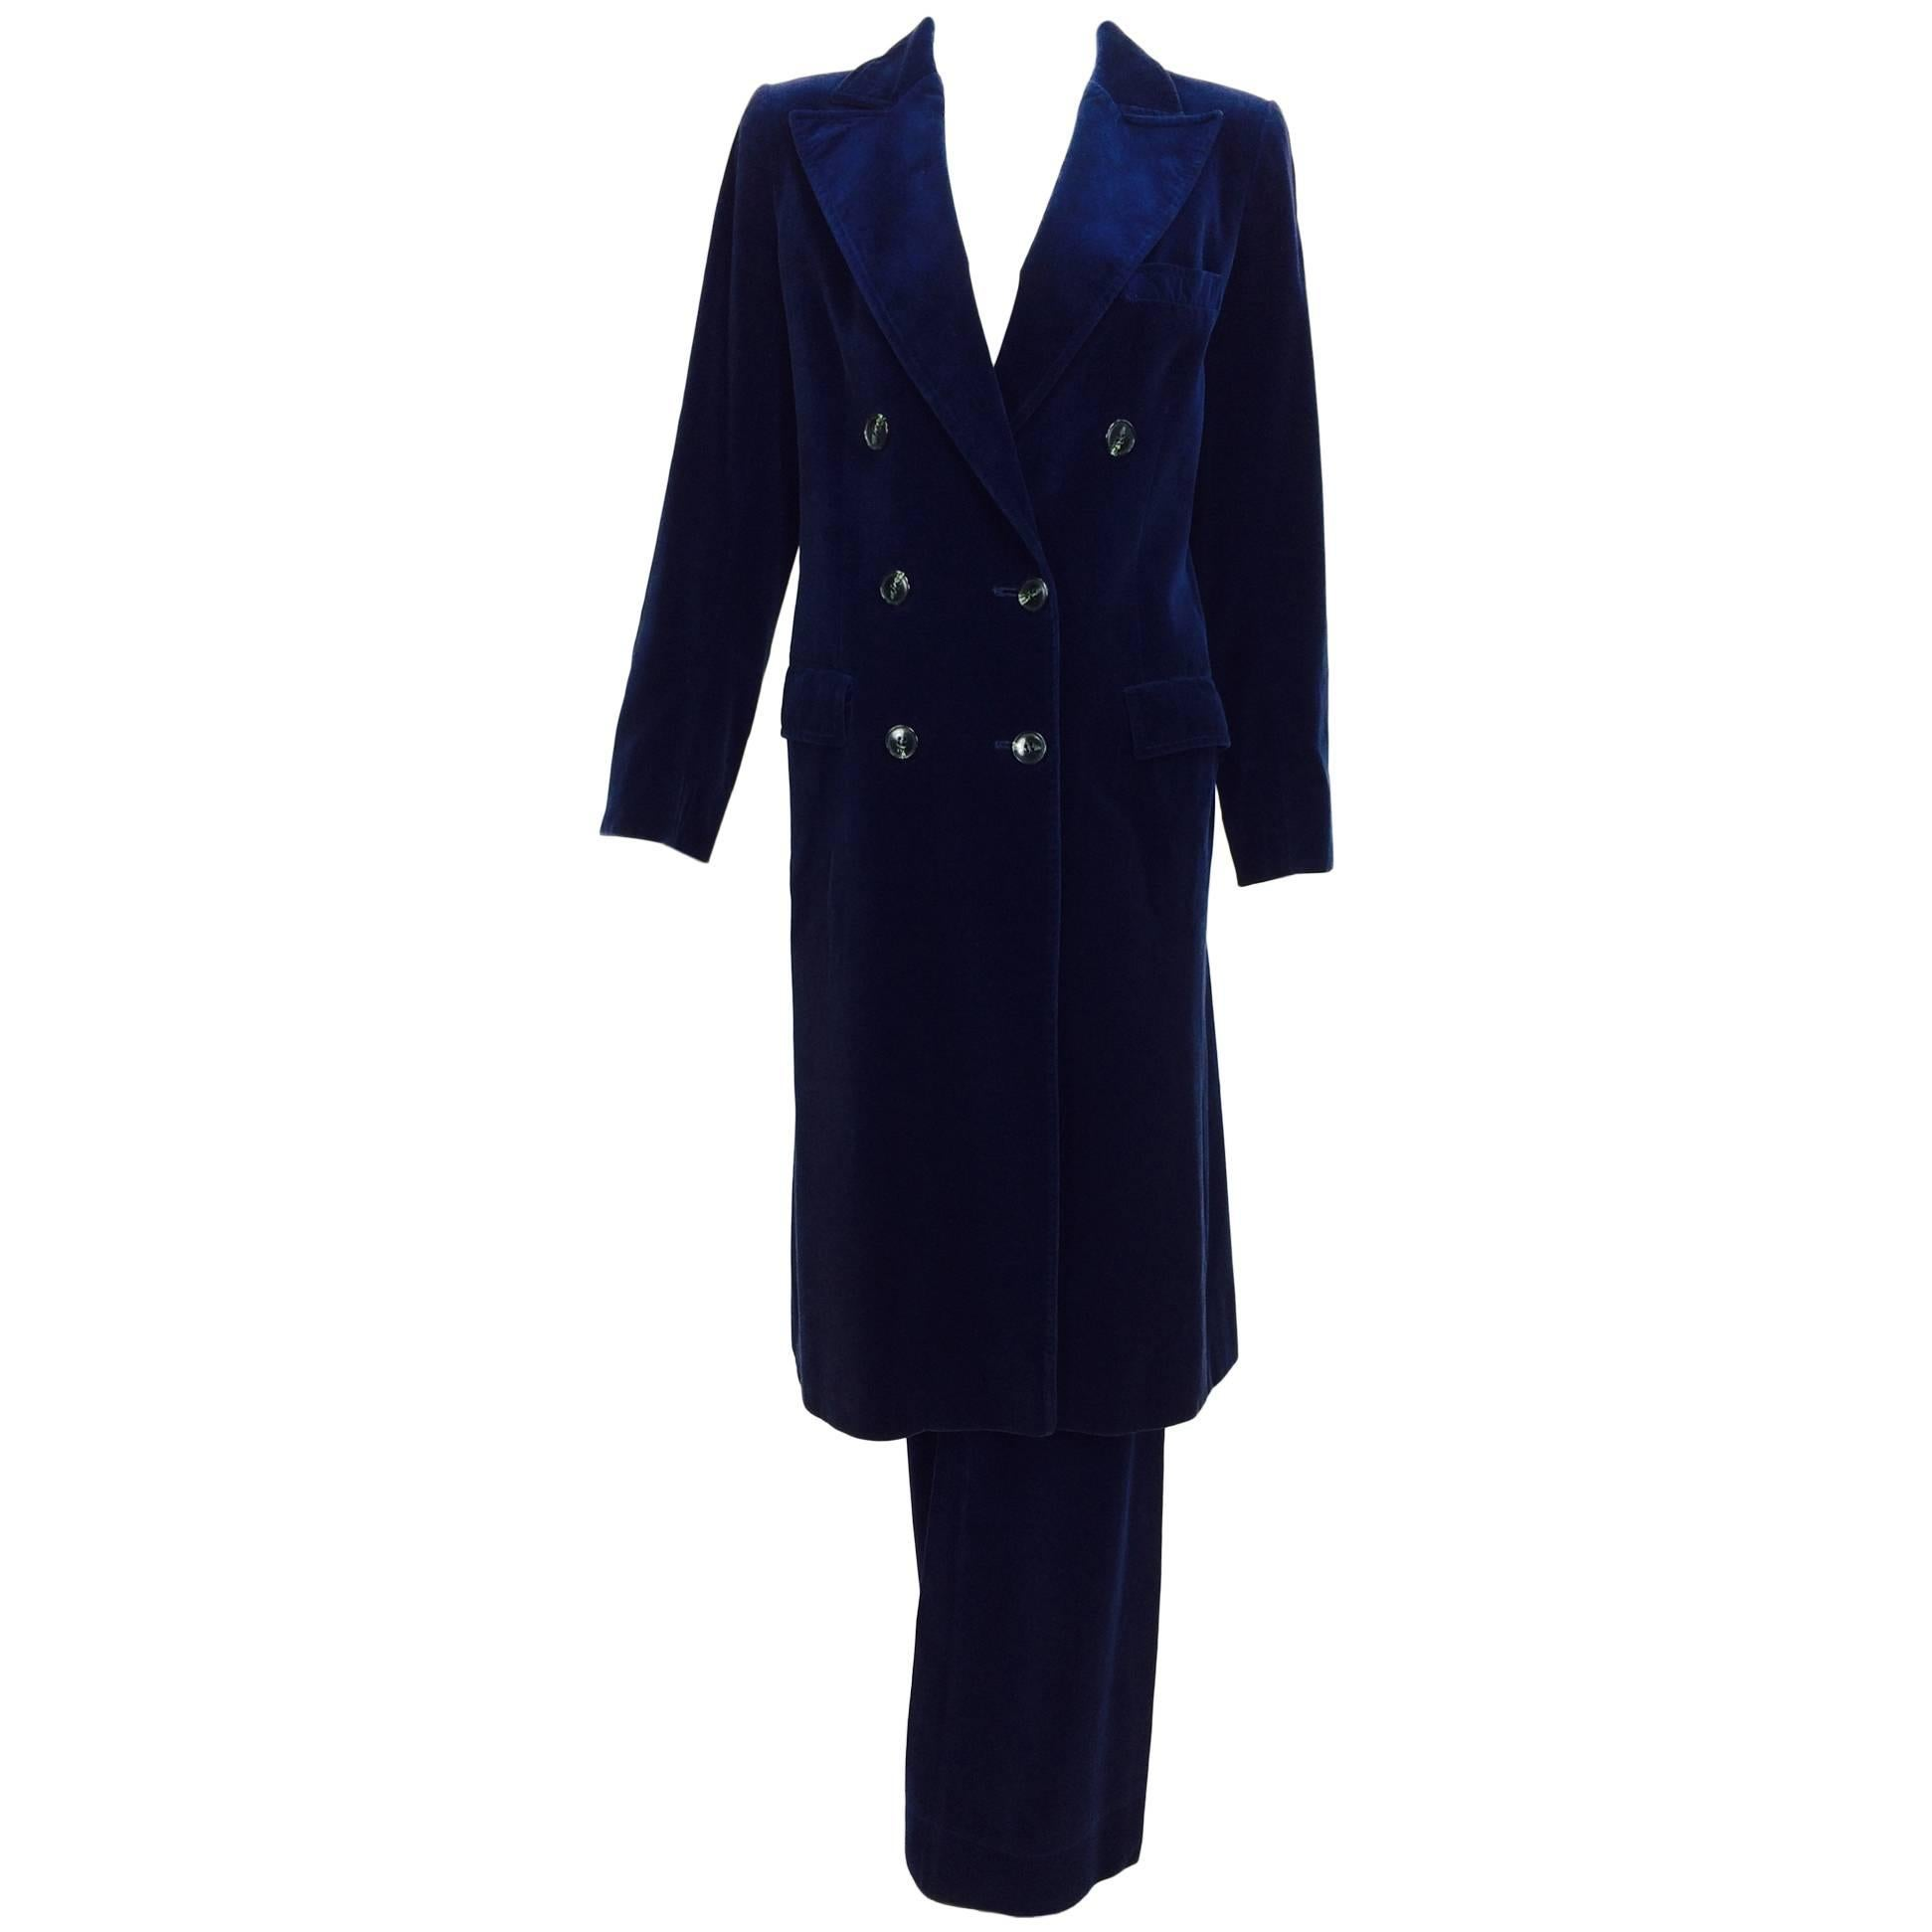 a3d28db871dc Vintage Guy Laroche ink blue velvet double breasted coat and trousers 1970s  at 1stdibs